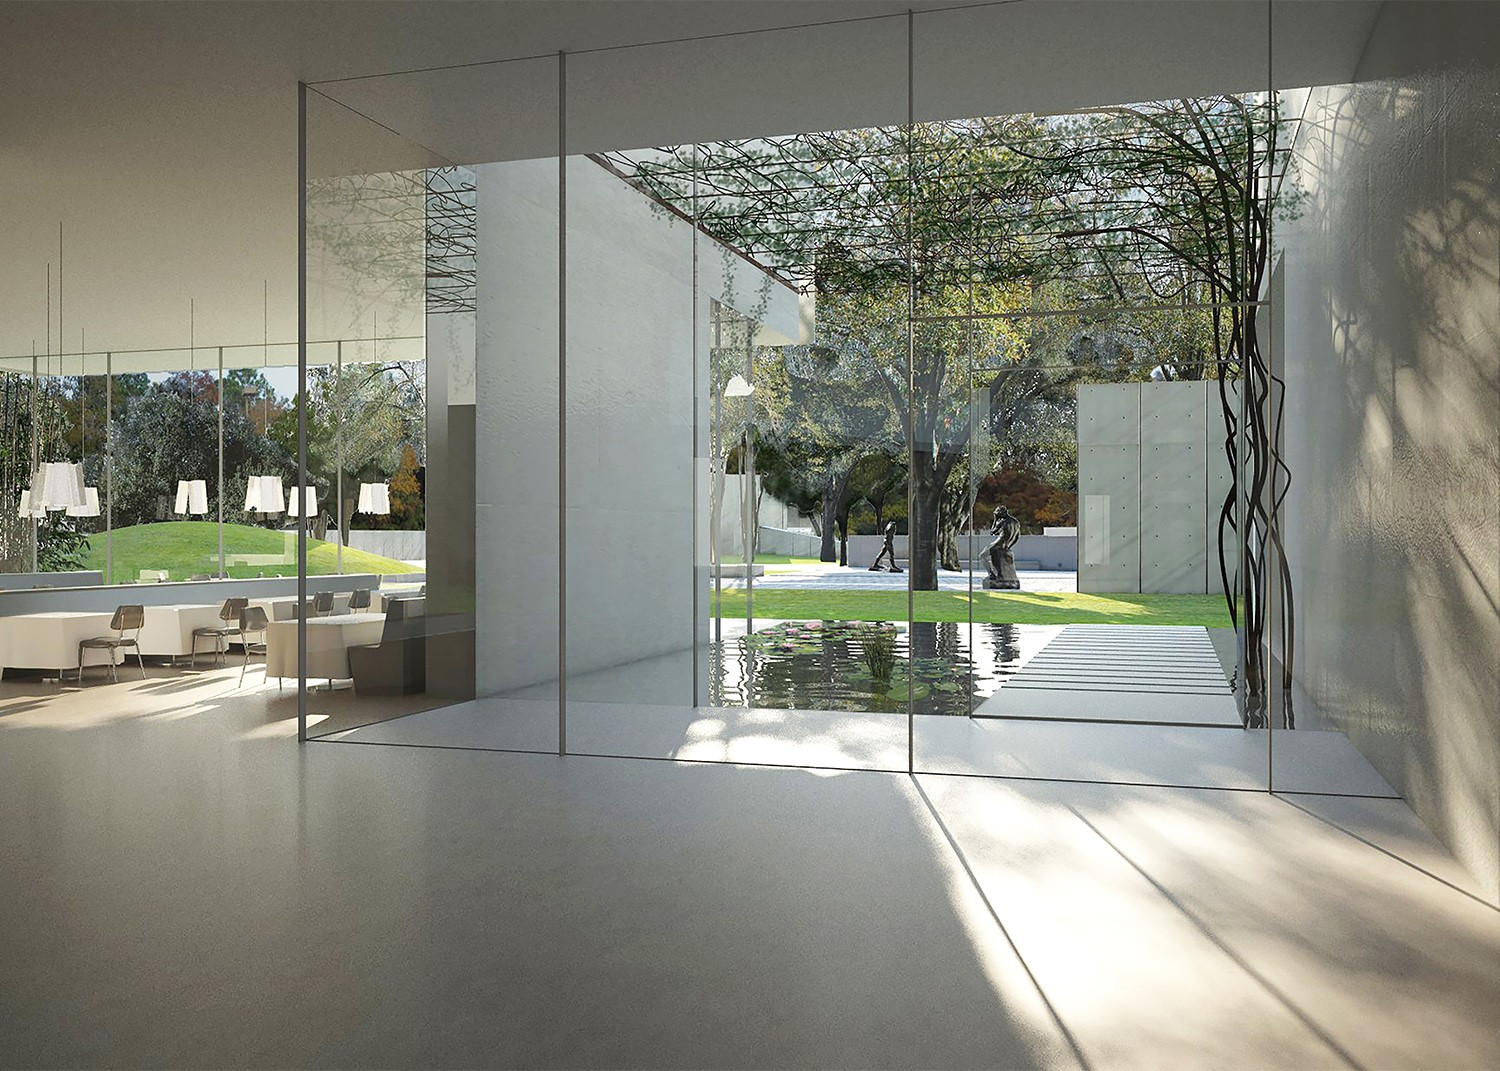 https://stevenholl.sfo2.digitaloceanspaces.com/uploads/projects/project-images/SHA_Kinder_GardenFloorRender.jpg